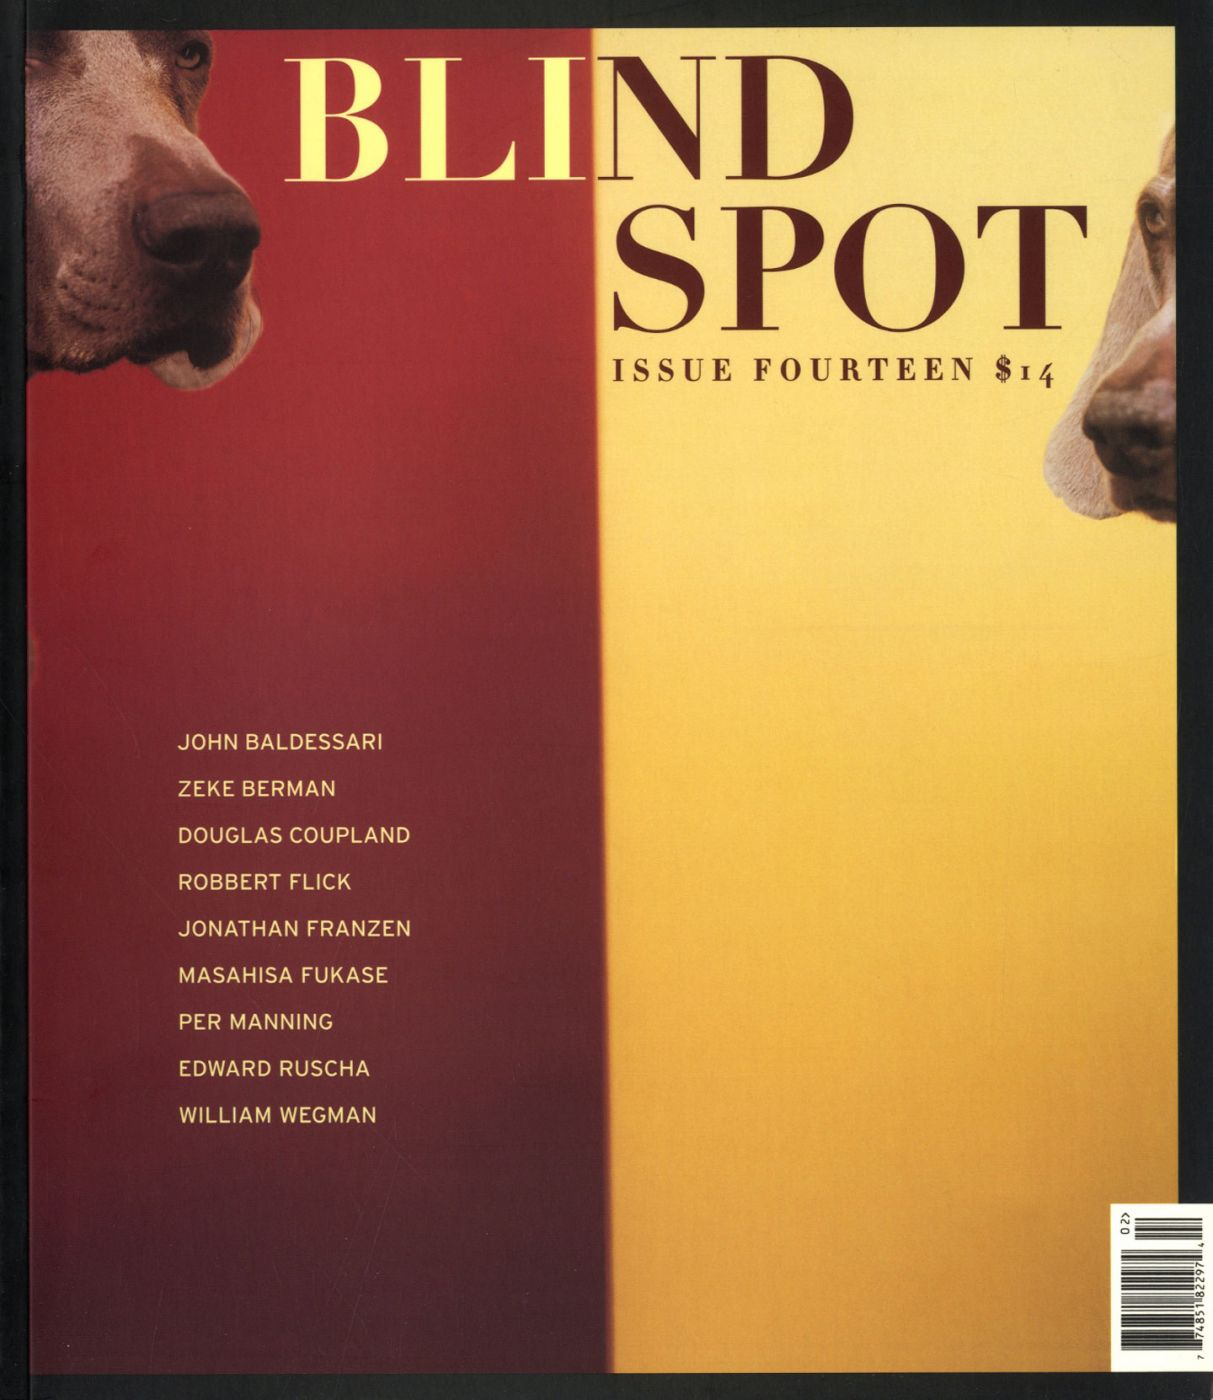 Blind Spot #14 (Photography Journal)